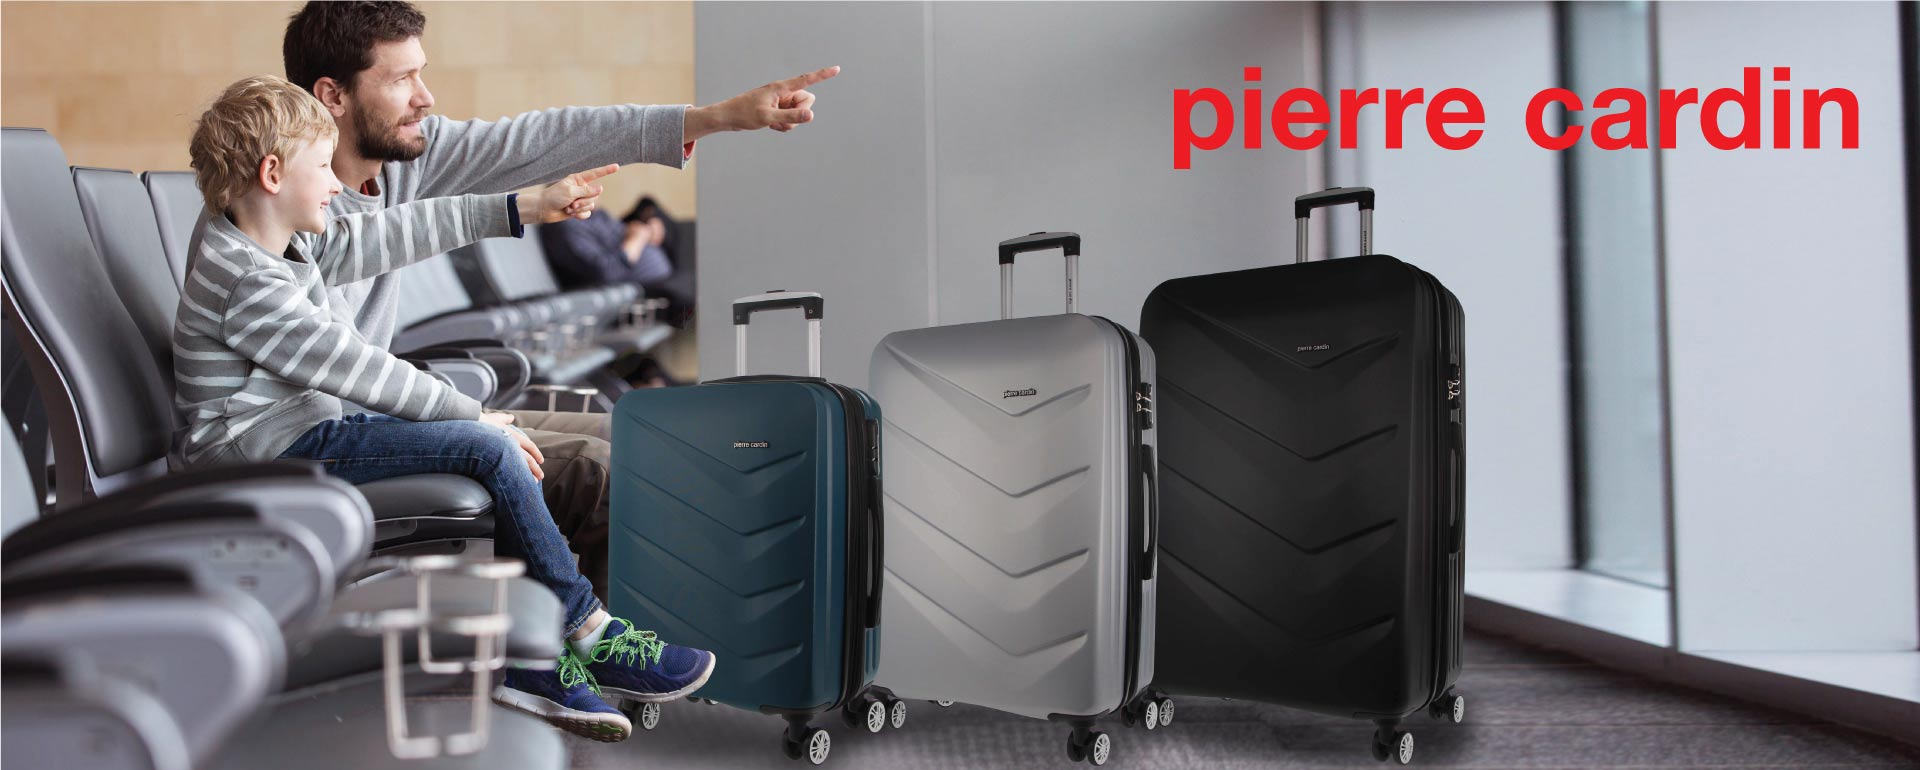 lifestyle-banners-winter-2020-luggage.jpg